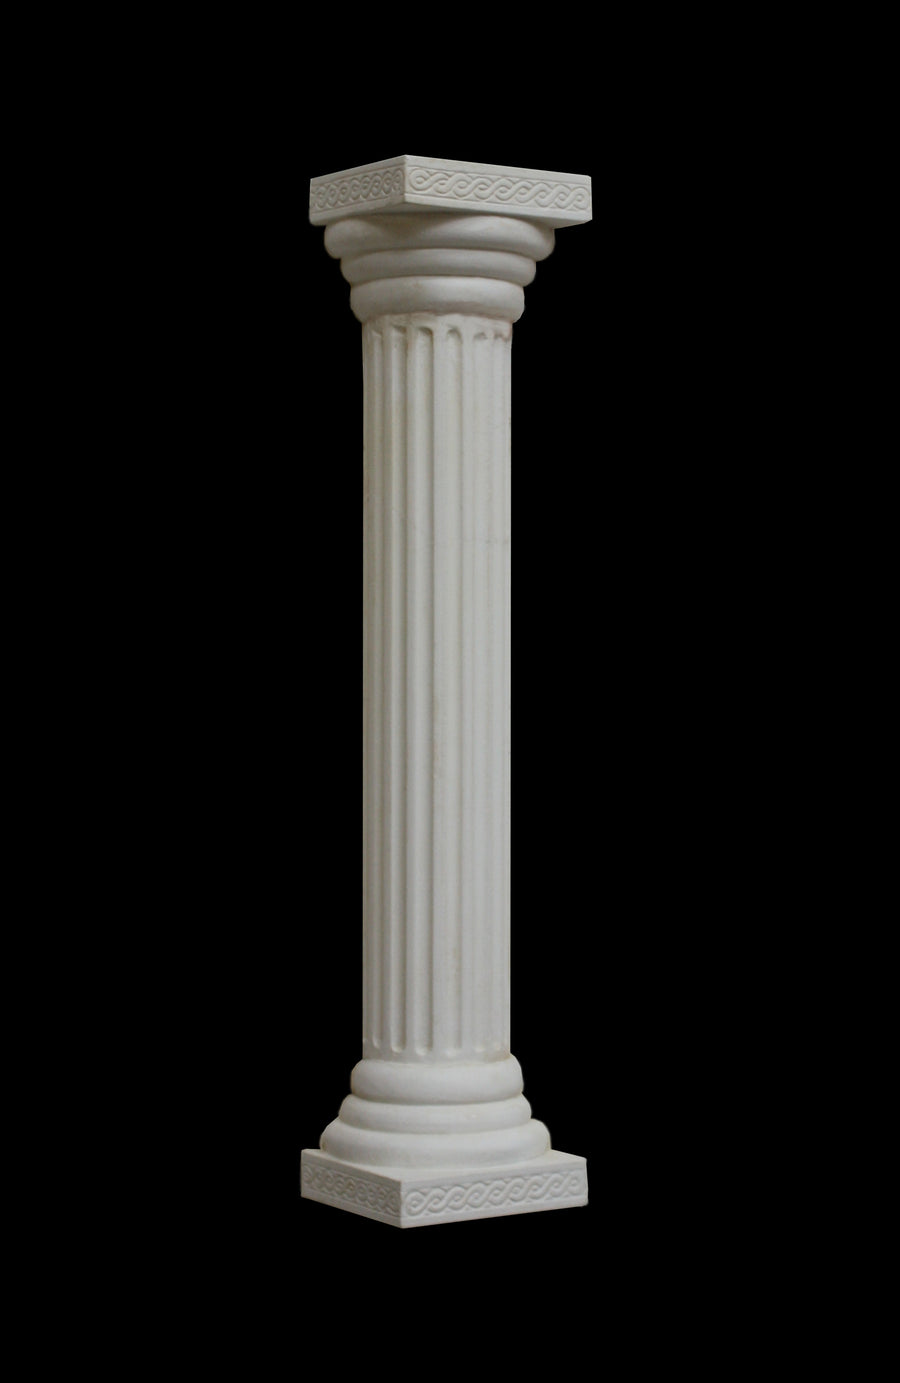 photo with black background of plaster cast sculpture of Greek half round column